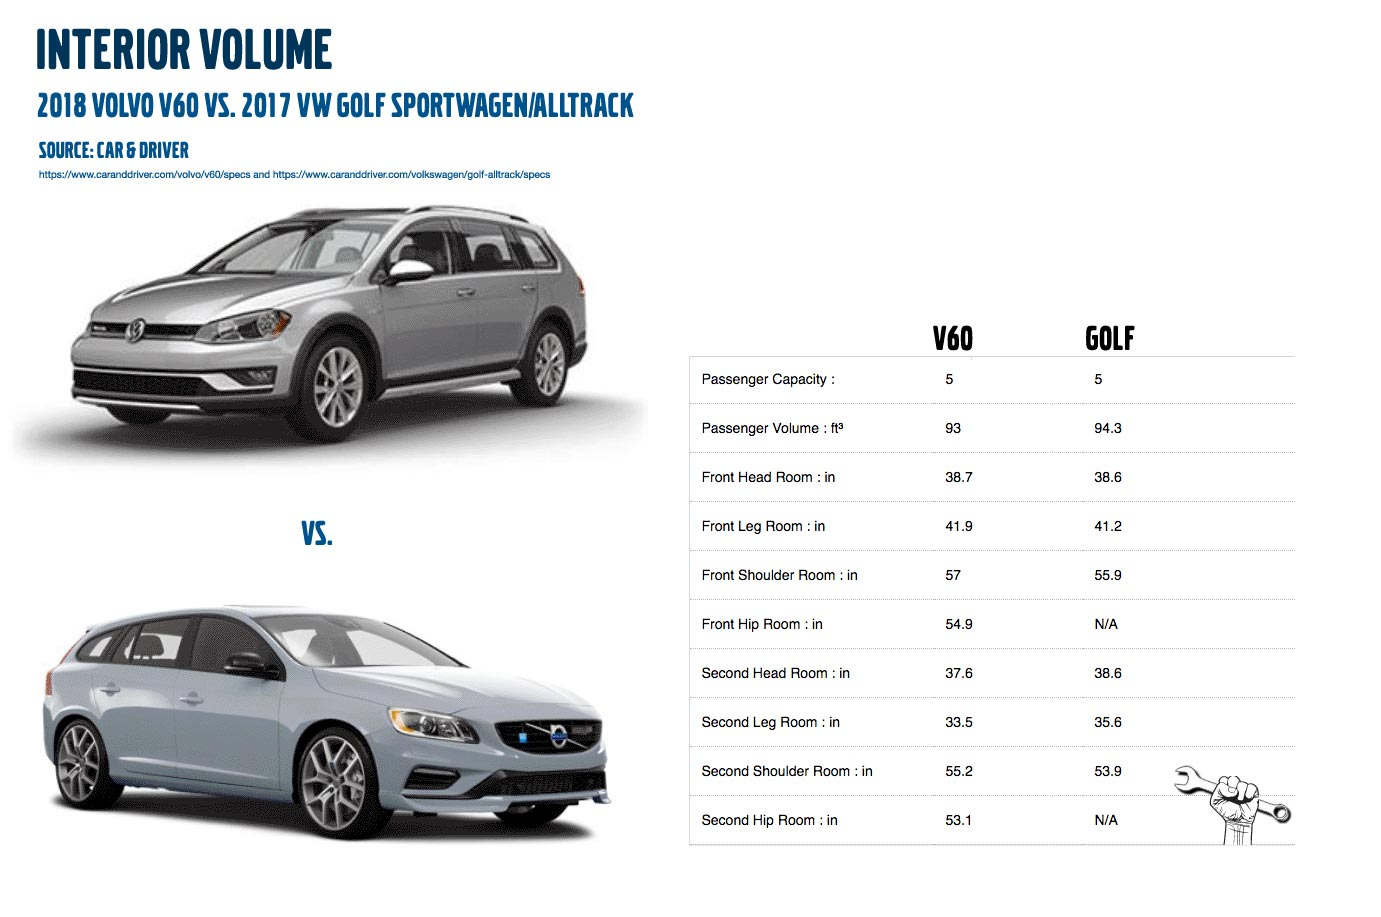 V60 vs. Golf Alltrack interior volume